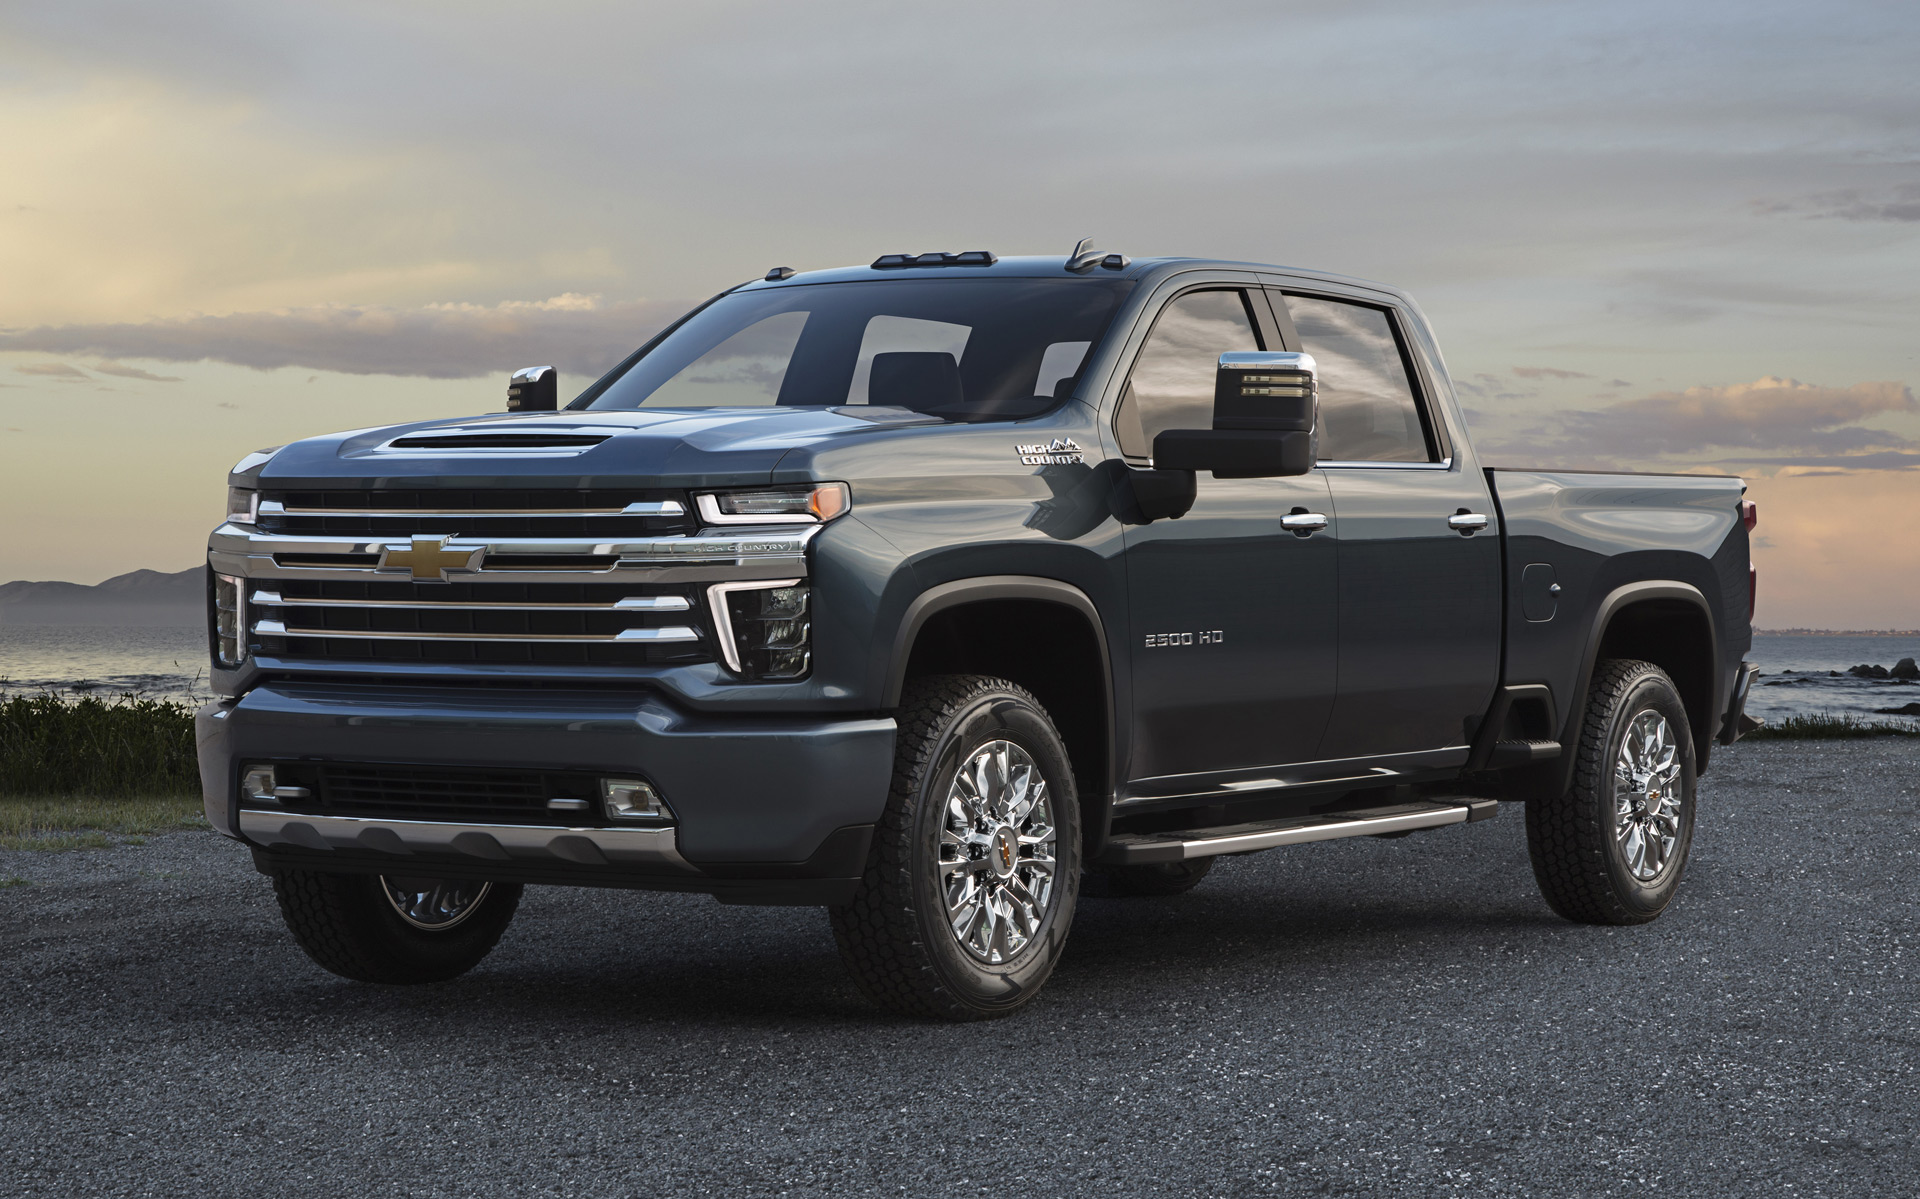 2020 Chevy Silverado Hd Review and Release date